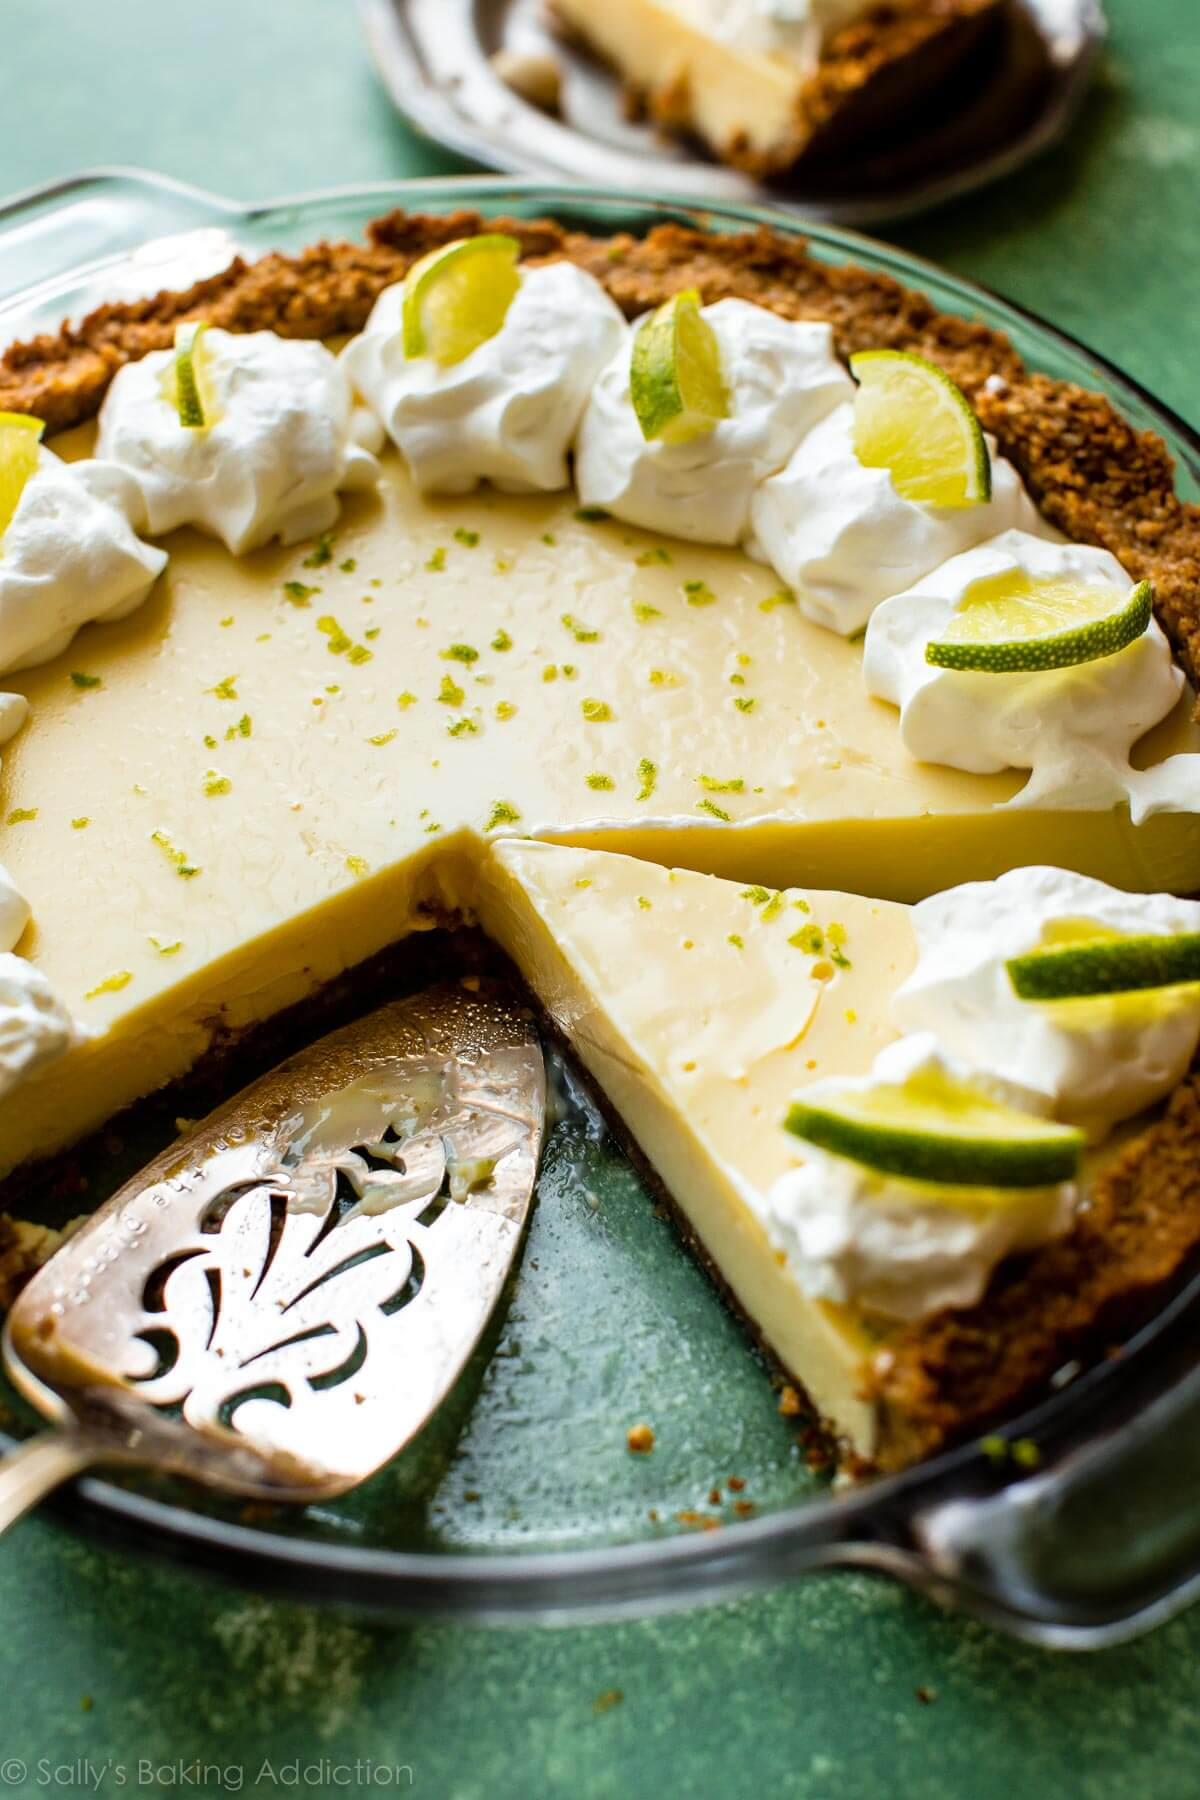 10 Recipe For Key Lime Pie - Best Key Lime Pie Recipes